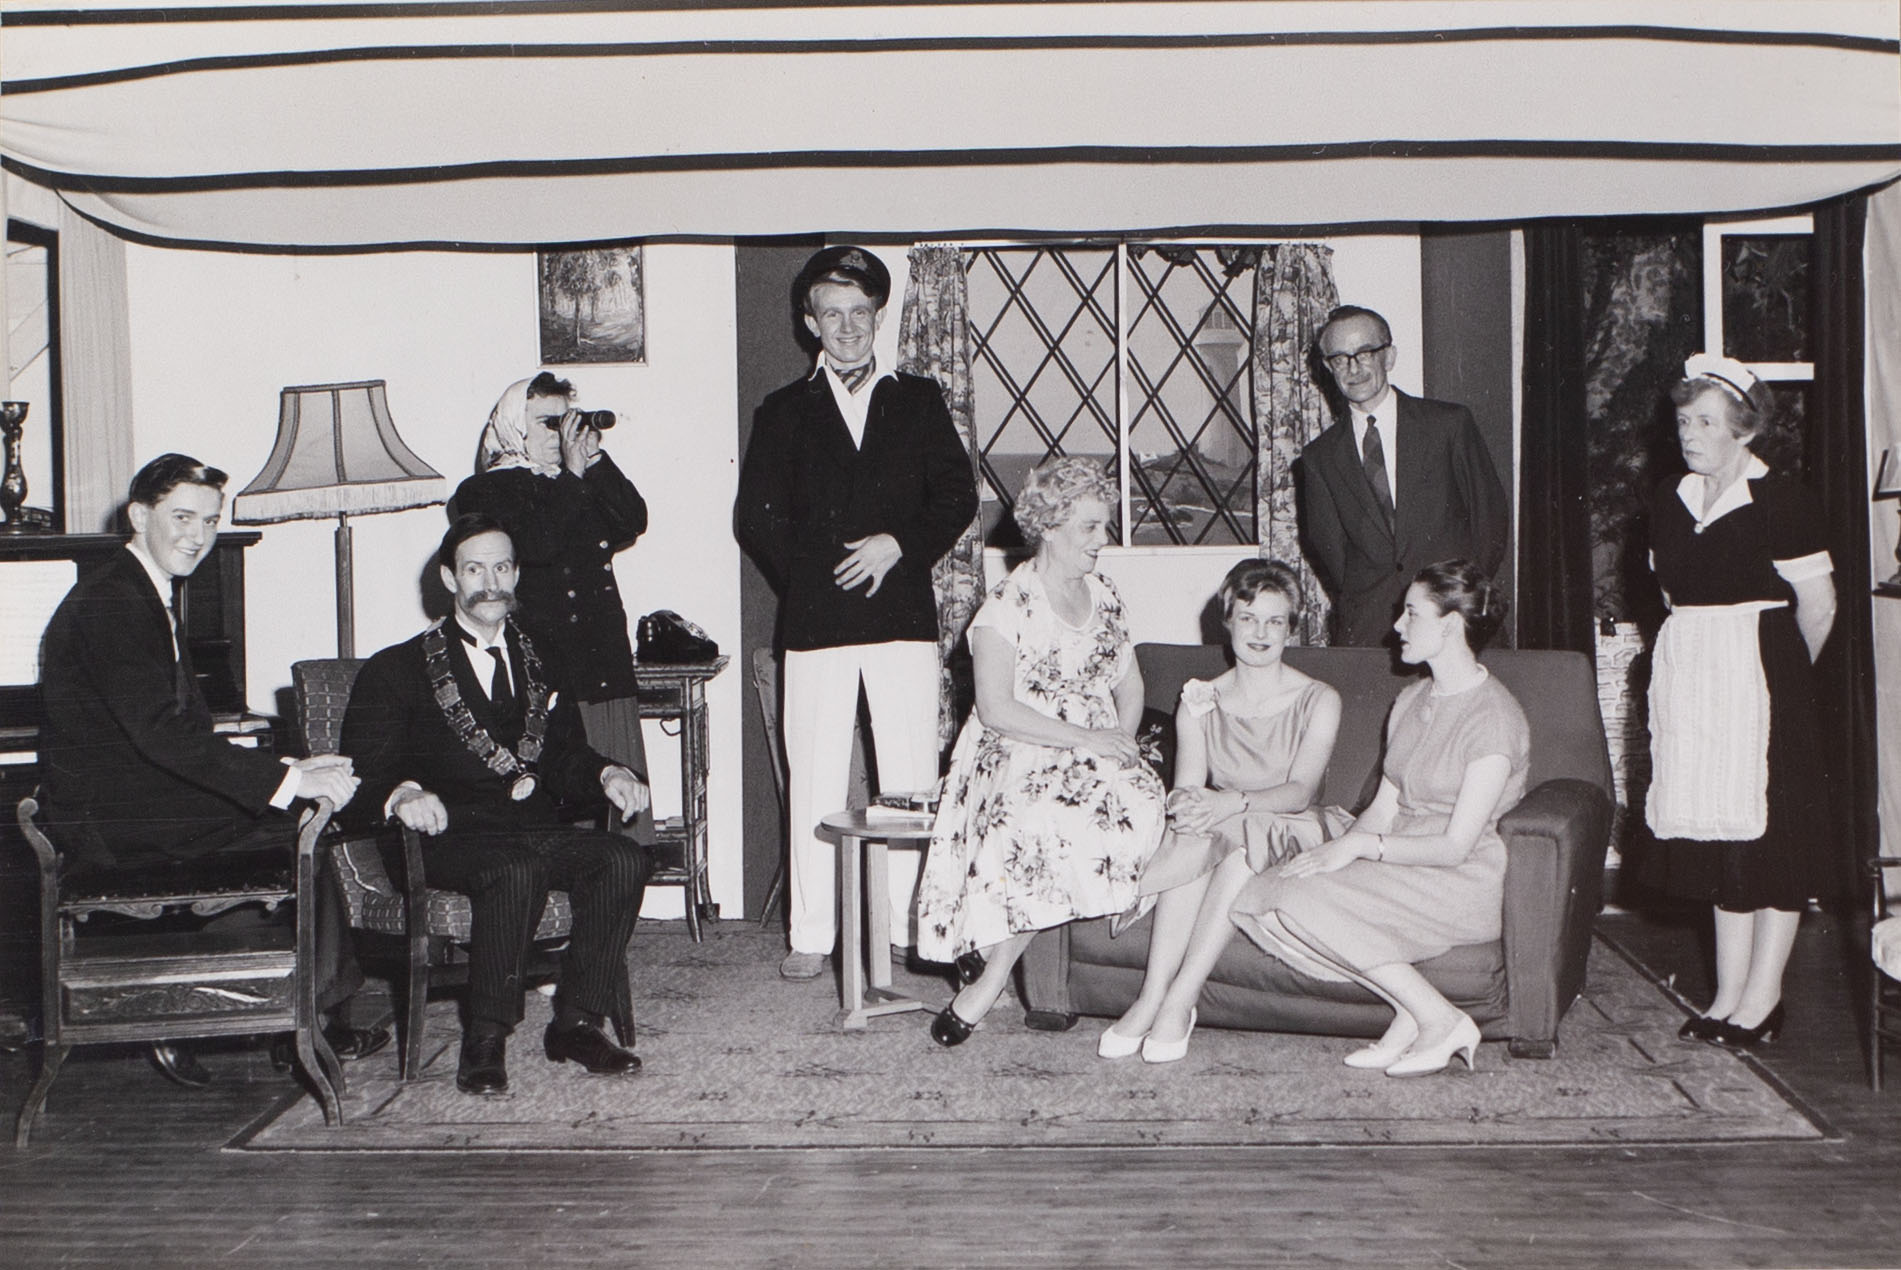 Photograph of actors in a scene from the 1960s play 'Blue Goose' performed by the Bishopsteignton Players